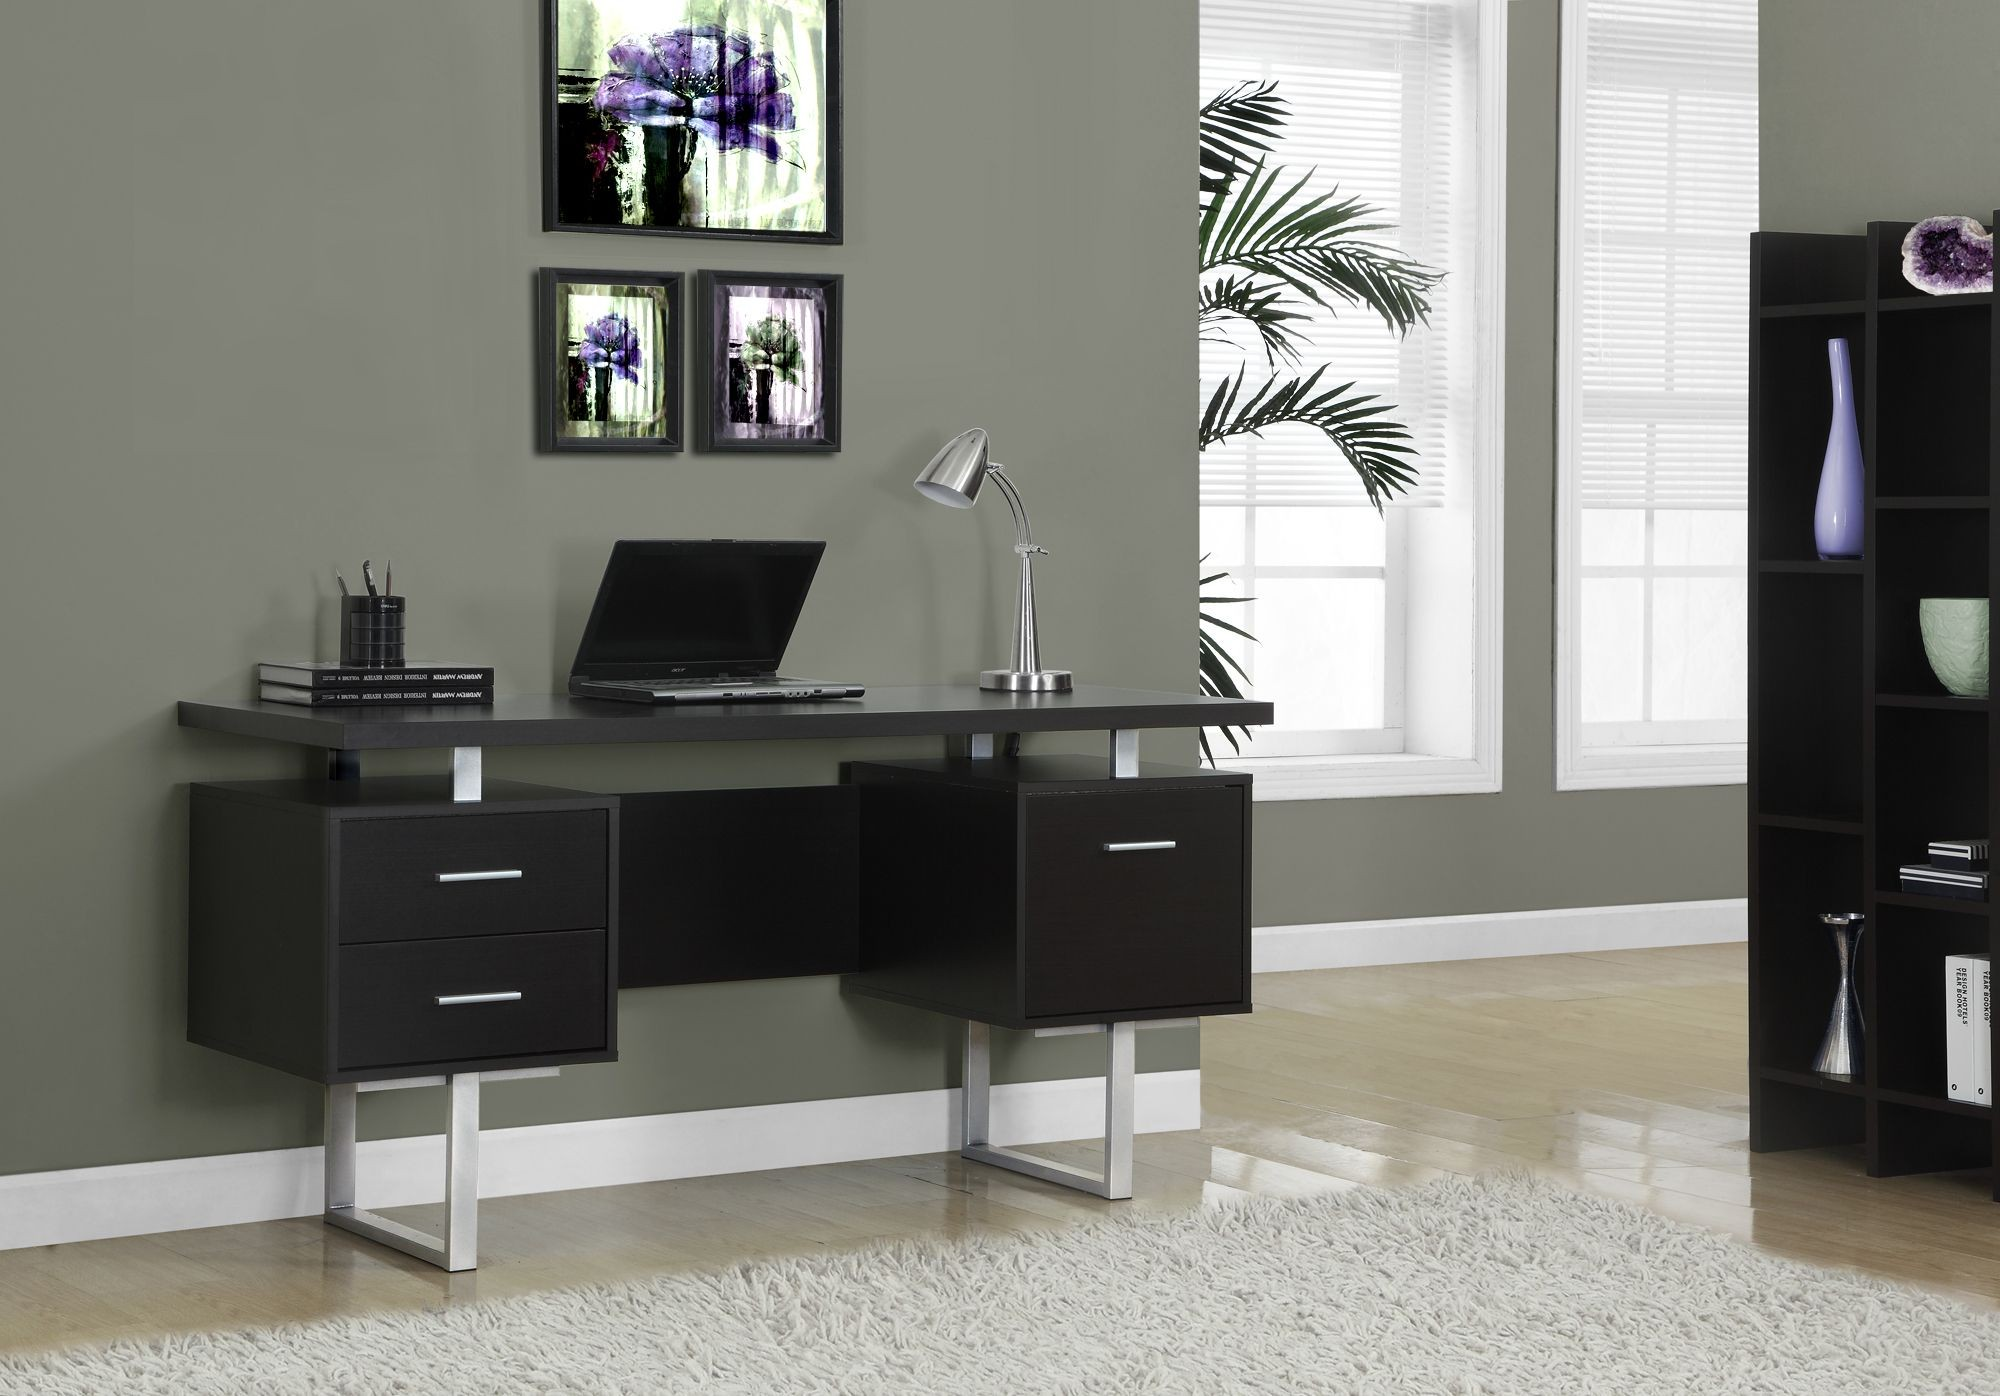 Cappuccino hollow core silver metal office desk from monarch 7080 coleman furniture - Metal office desk ...